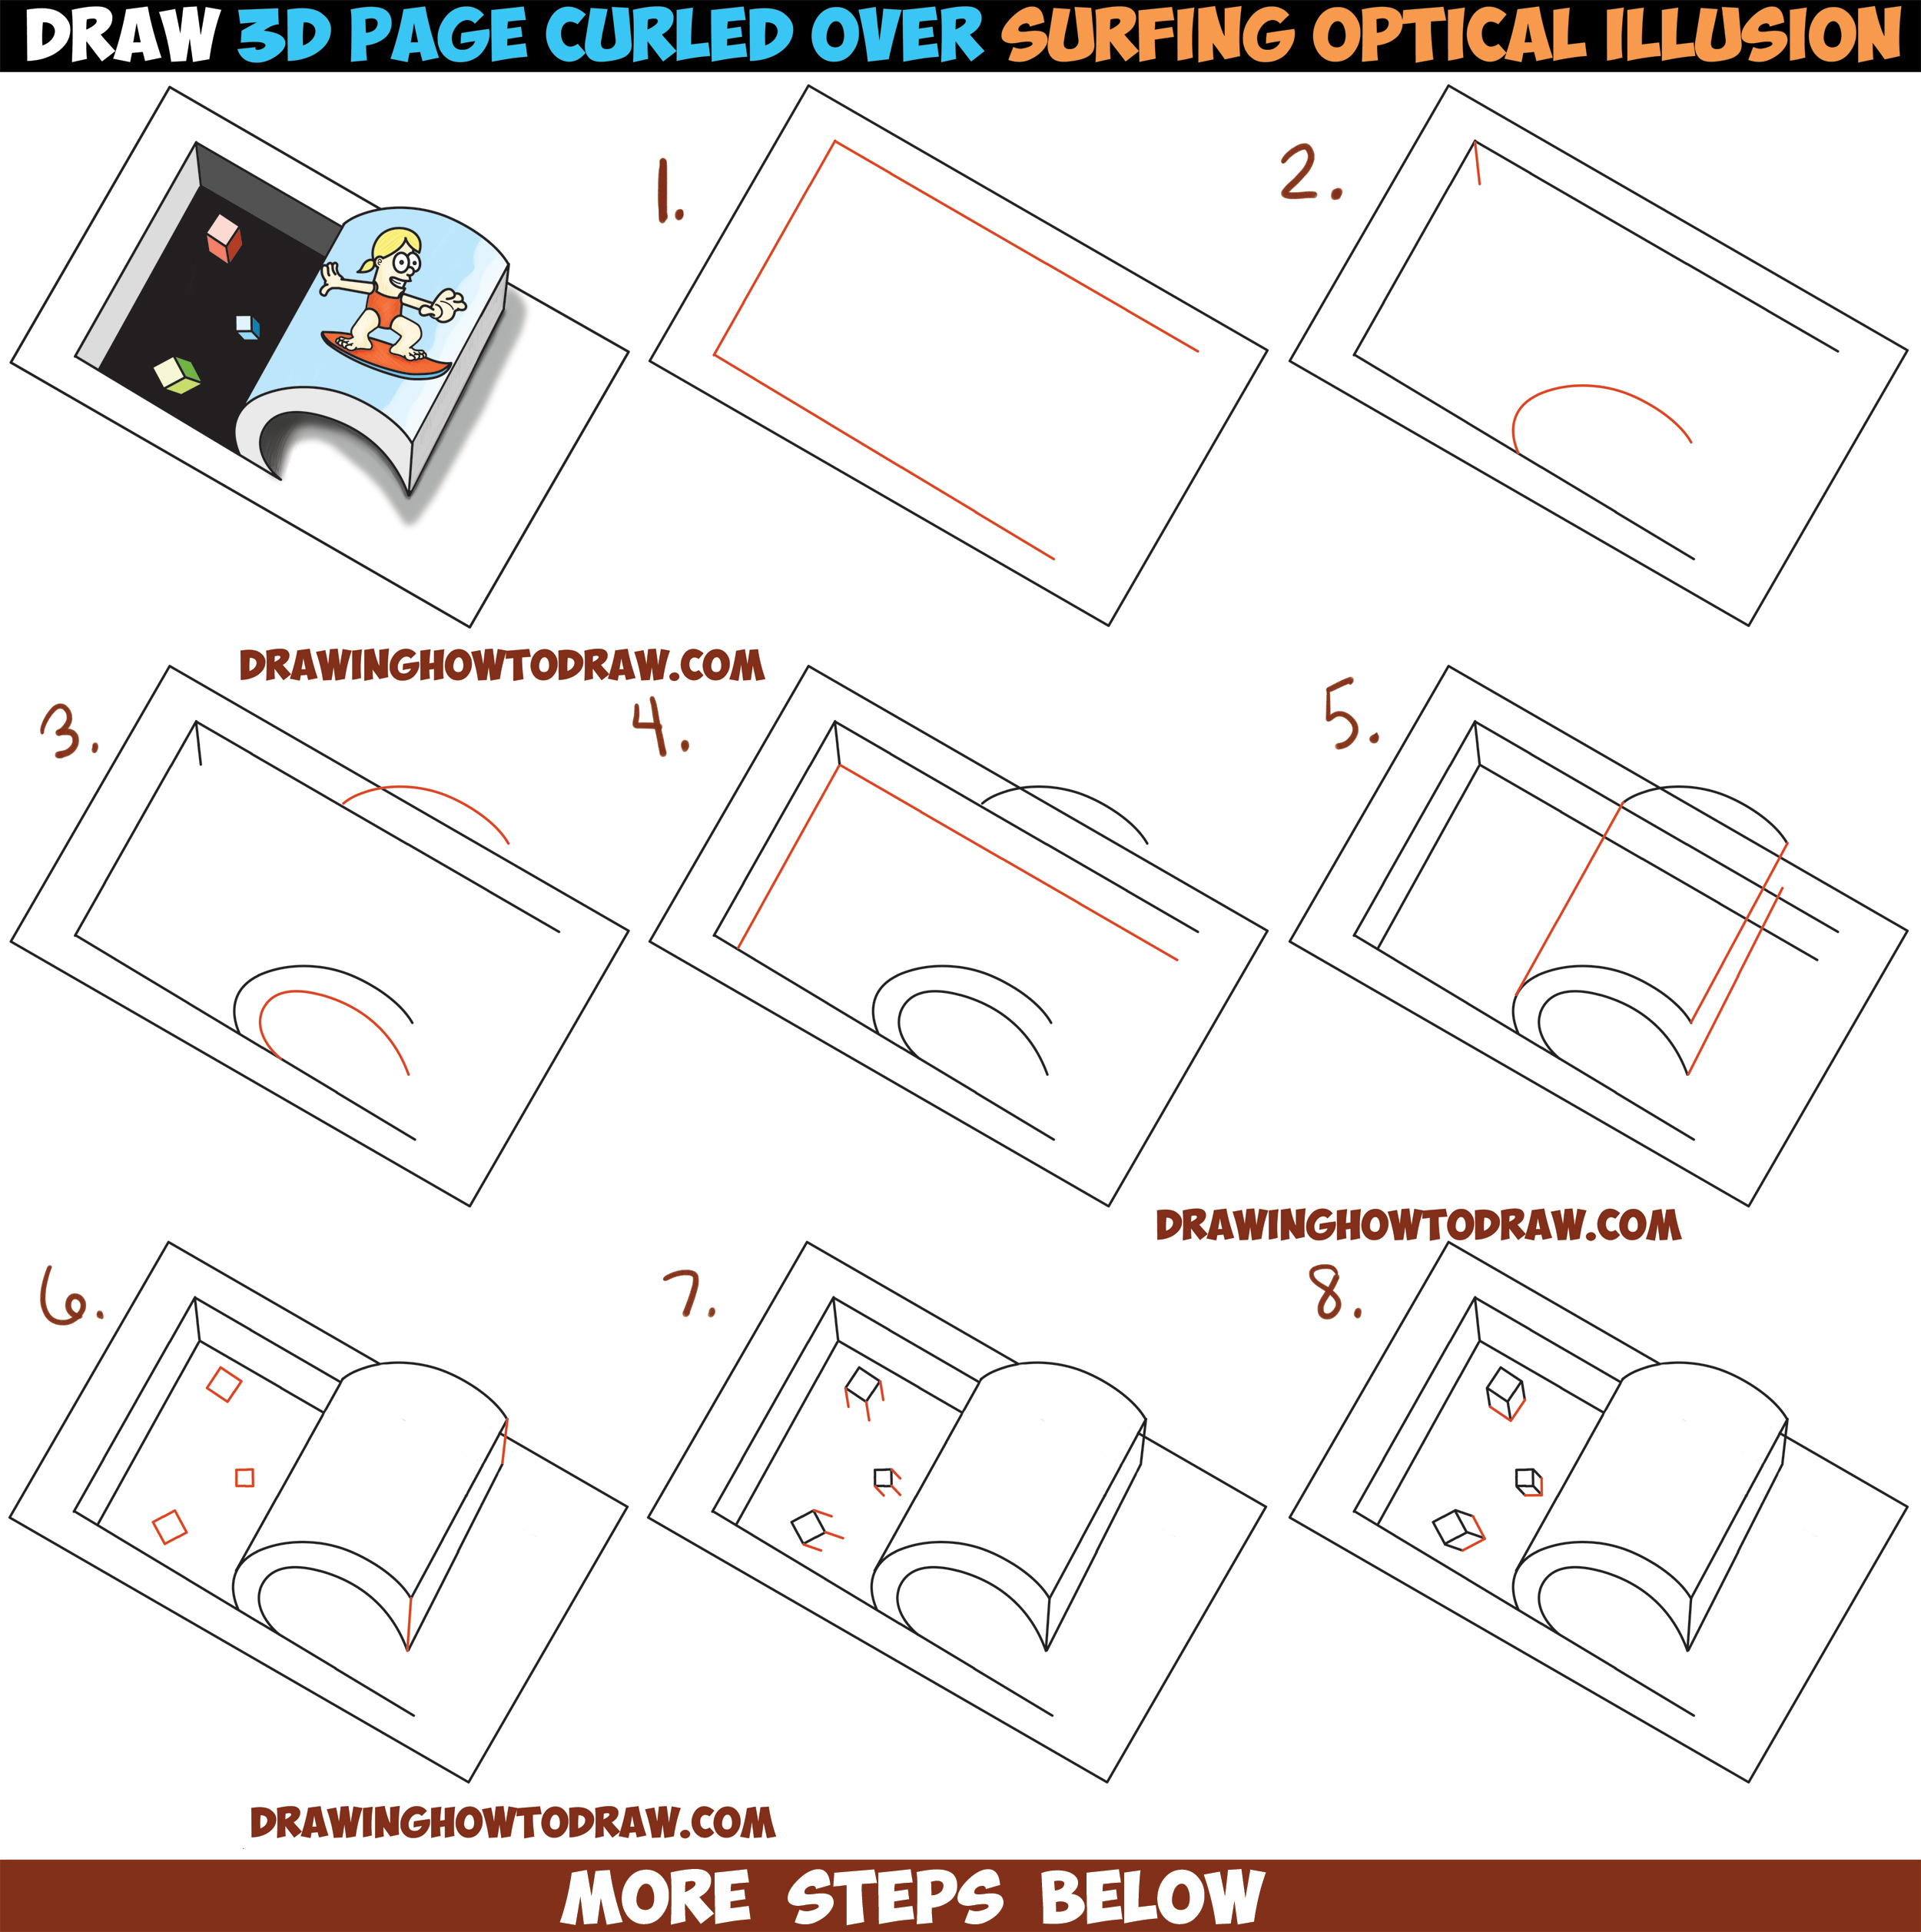 Drawn optical illusion step by step Up Like Draw Steps Simple